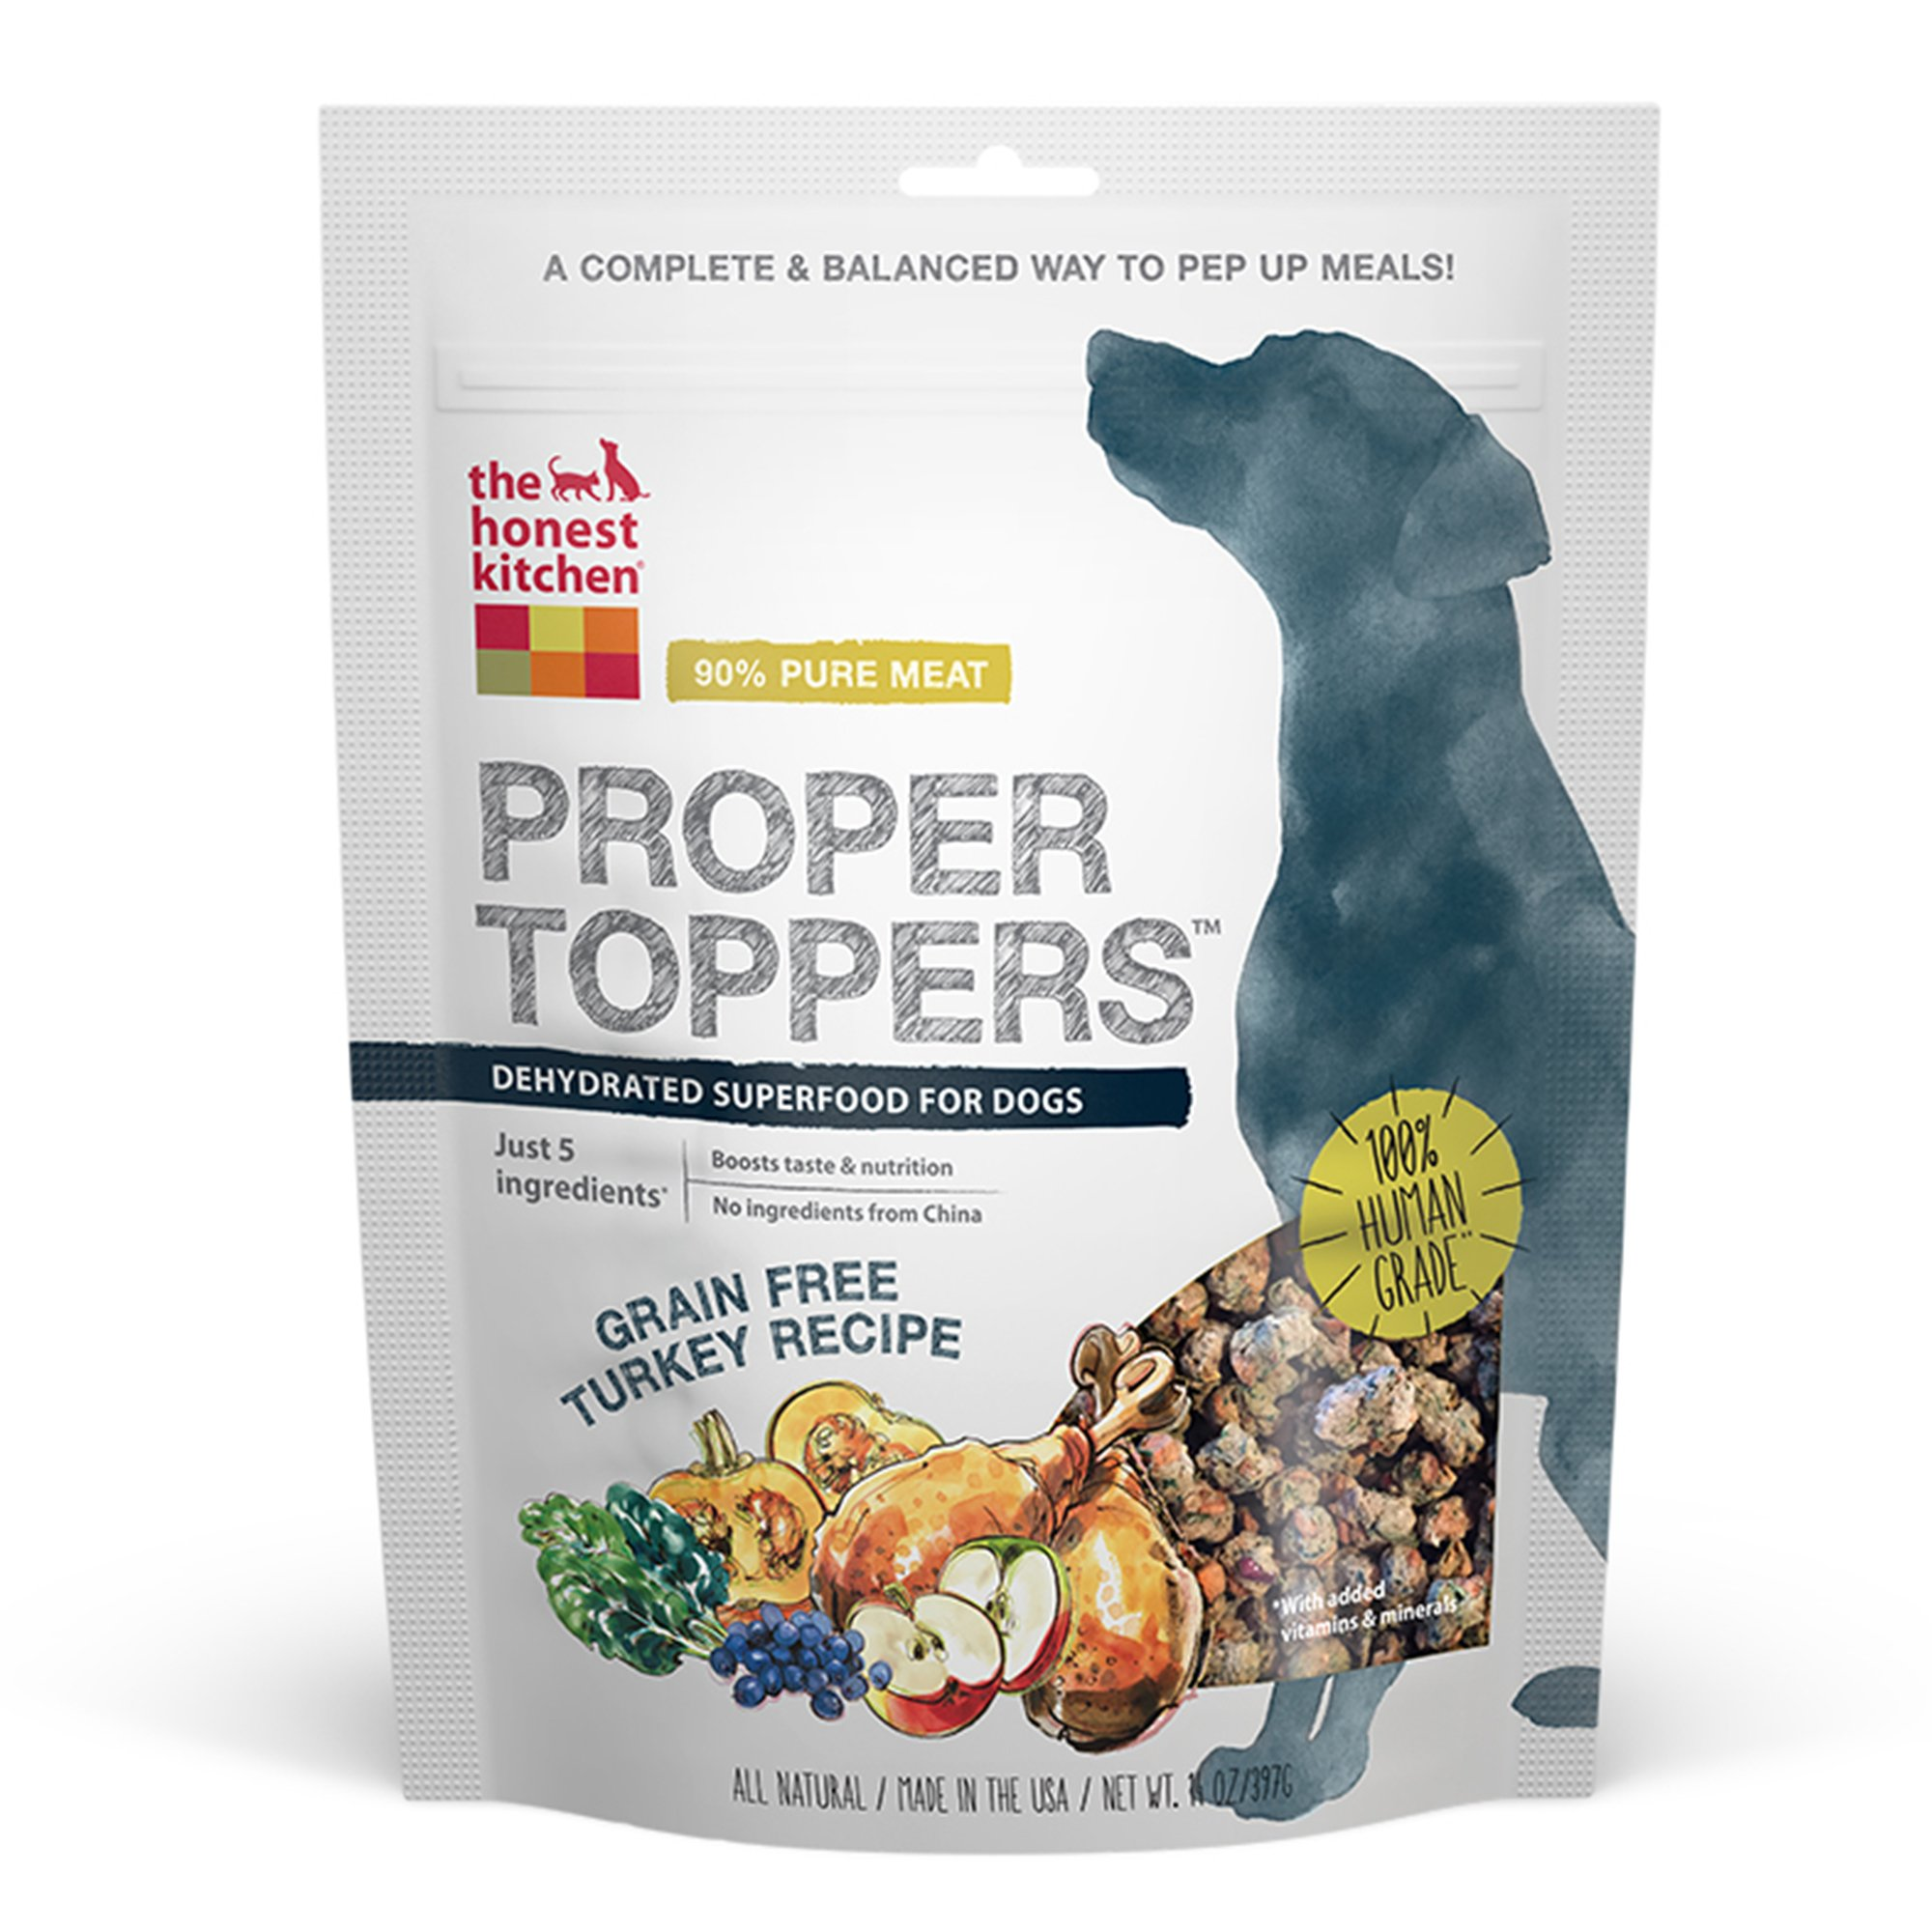 Honest Kitchen The Proper Toppers: Natural Human Grade Dehydrated Dog Superfood, Grain Free Turkey, 14 oz